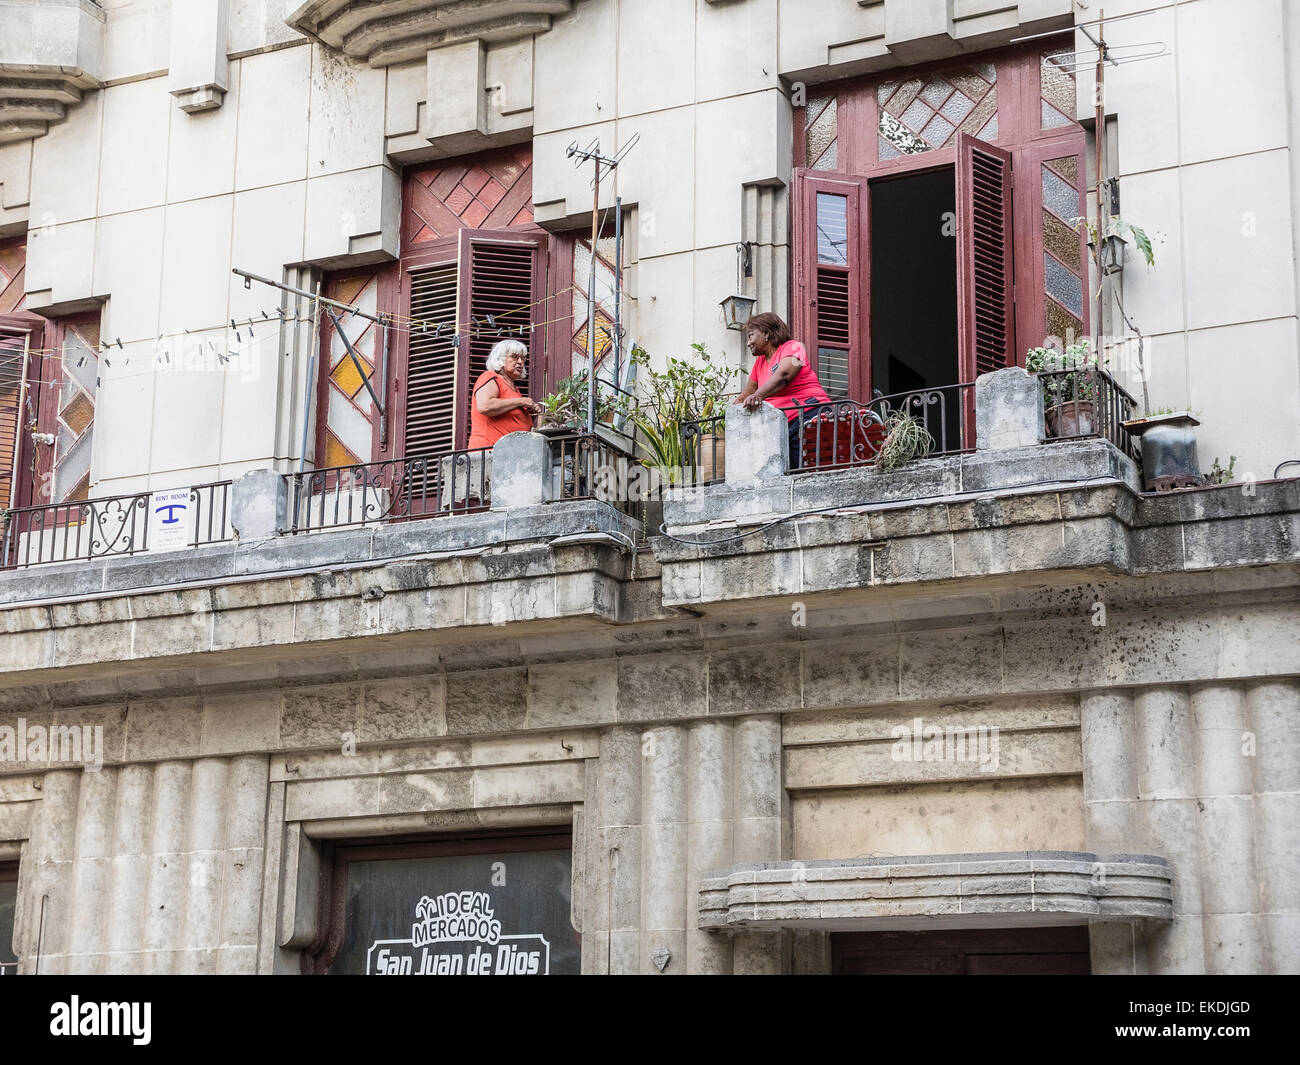 Two female adult Cuban neighbors, both wearing red tops, talking while on the balconies of their second story apartments. - Stock Image